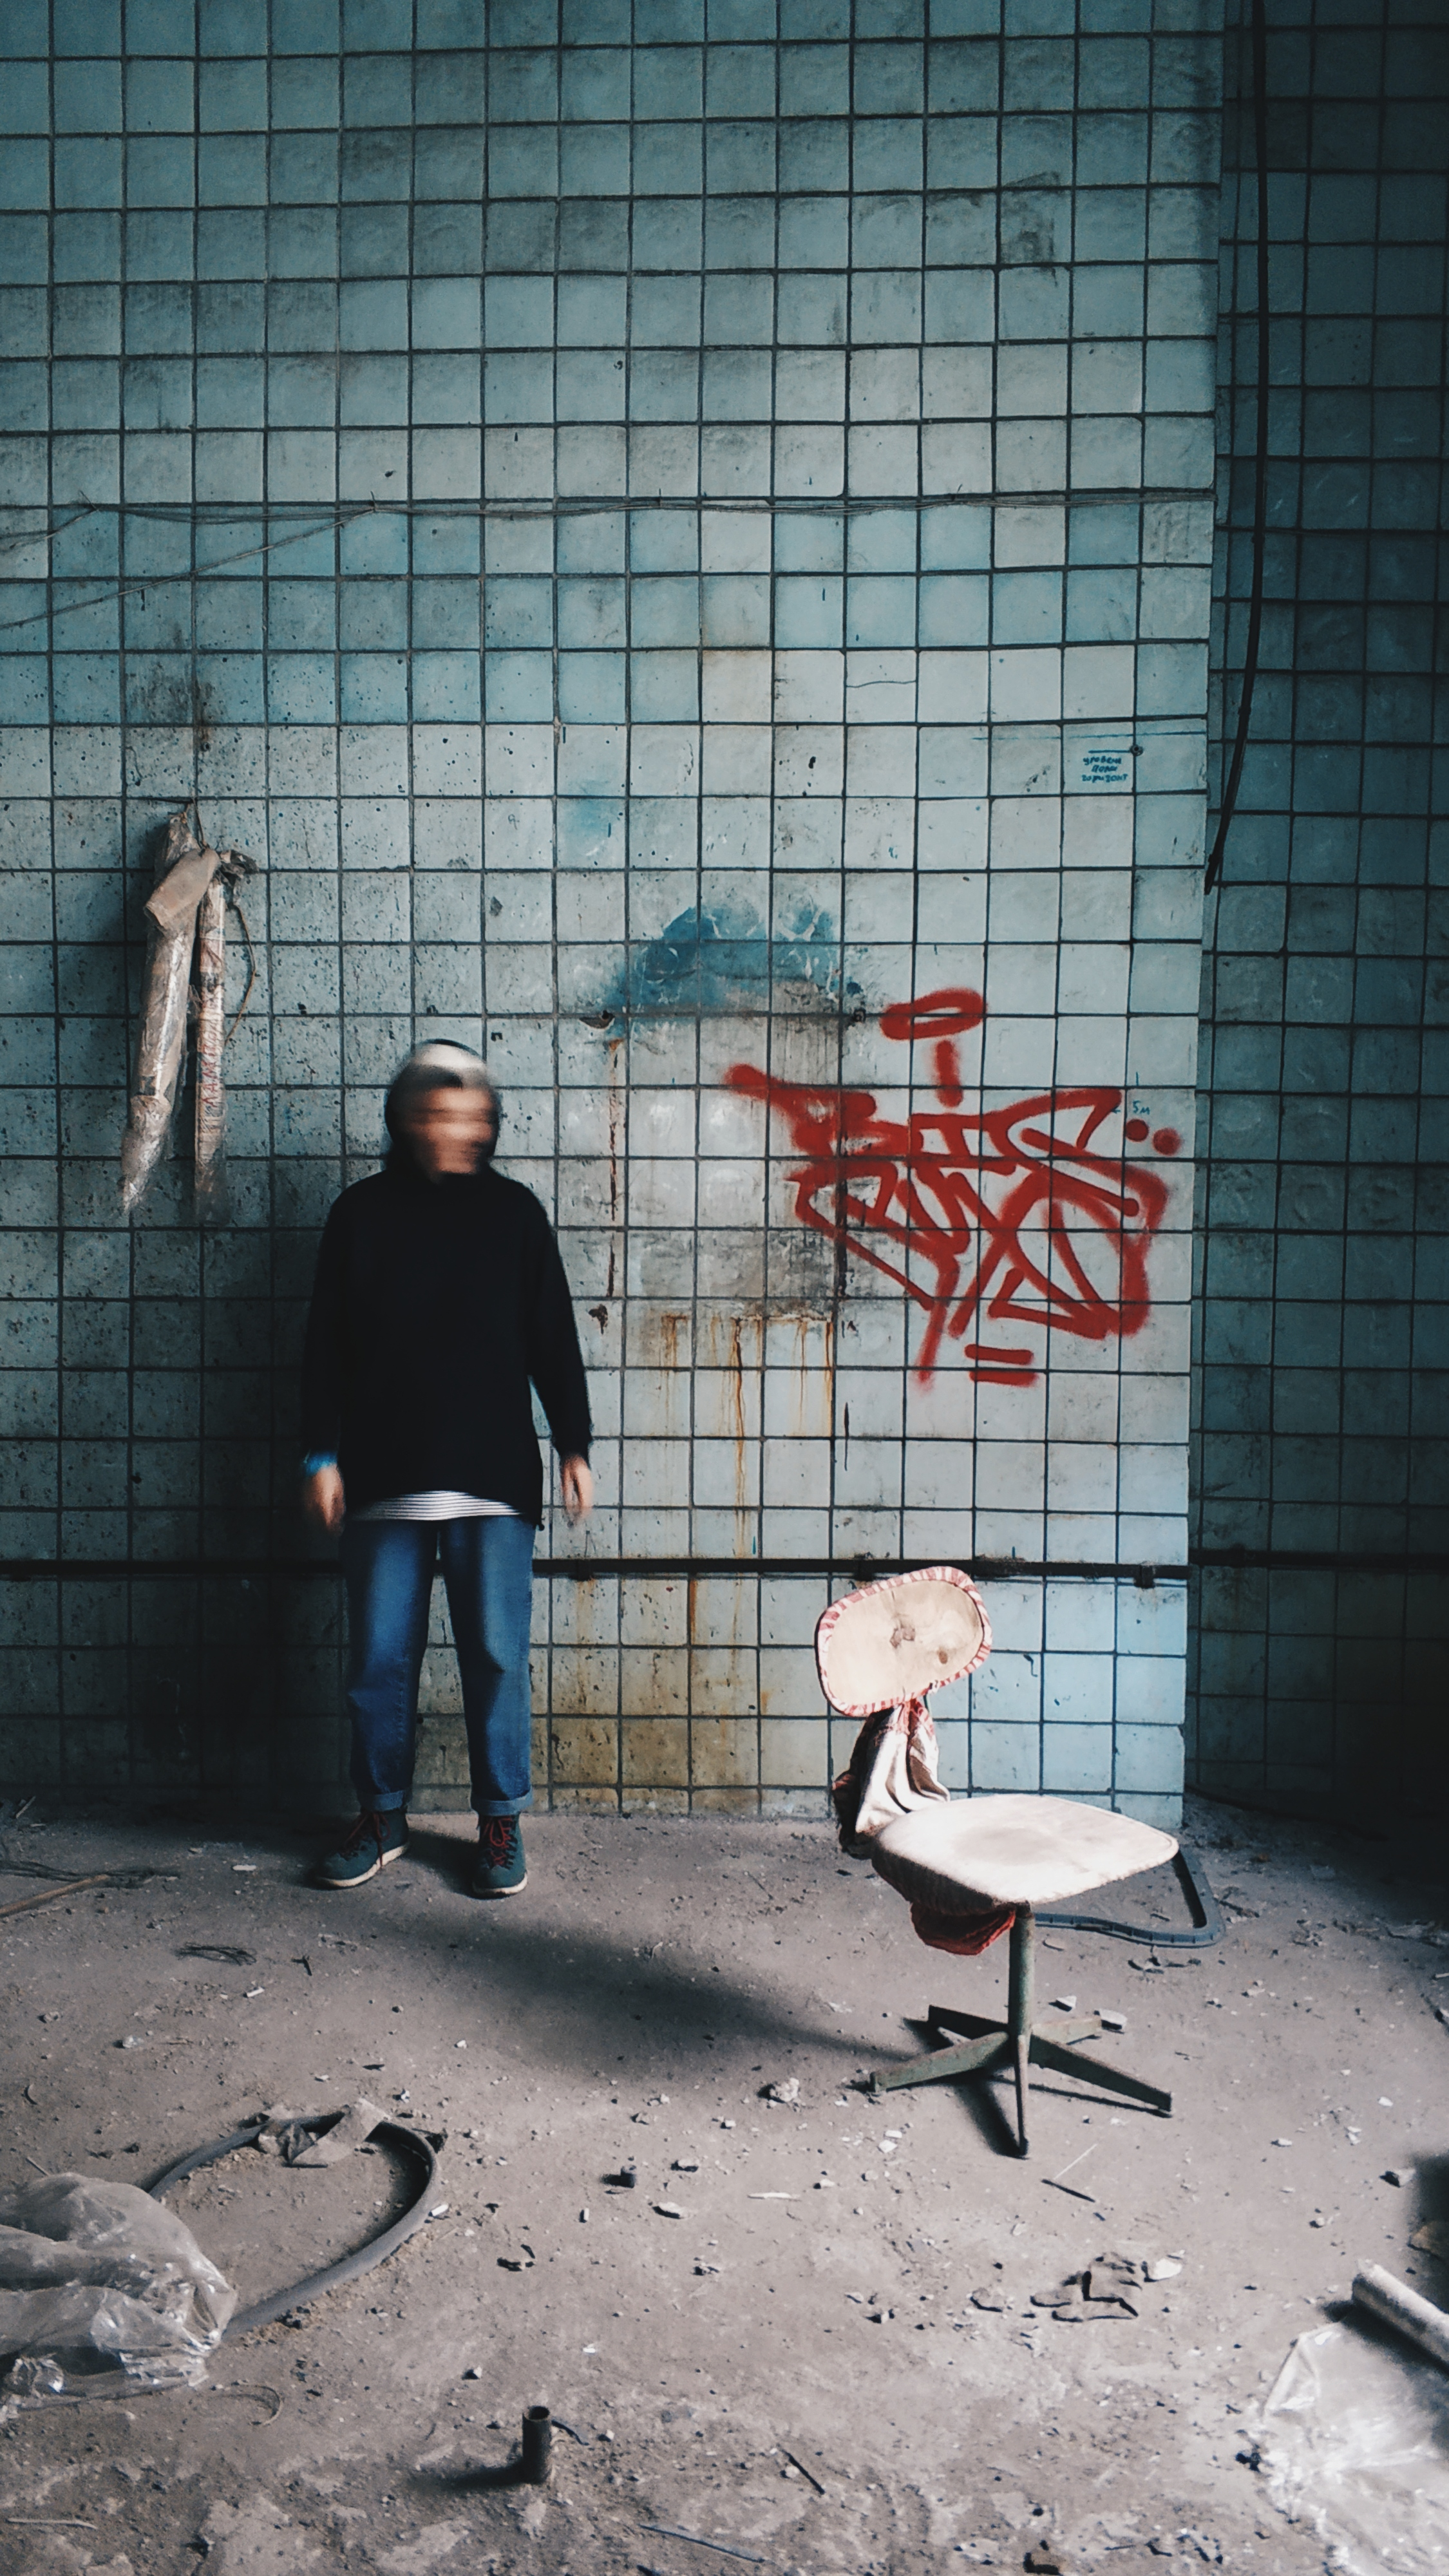 Unrecognizable Anxious Man Near Tiled Wall In Abandoned Building Free Stock Photo